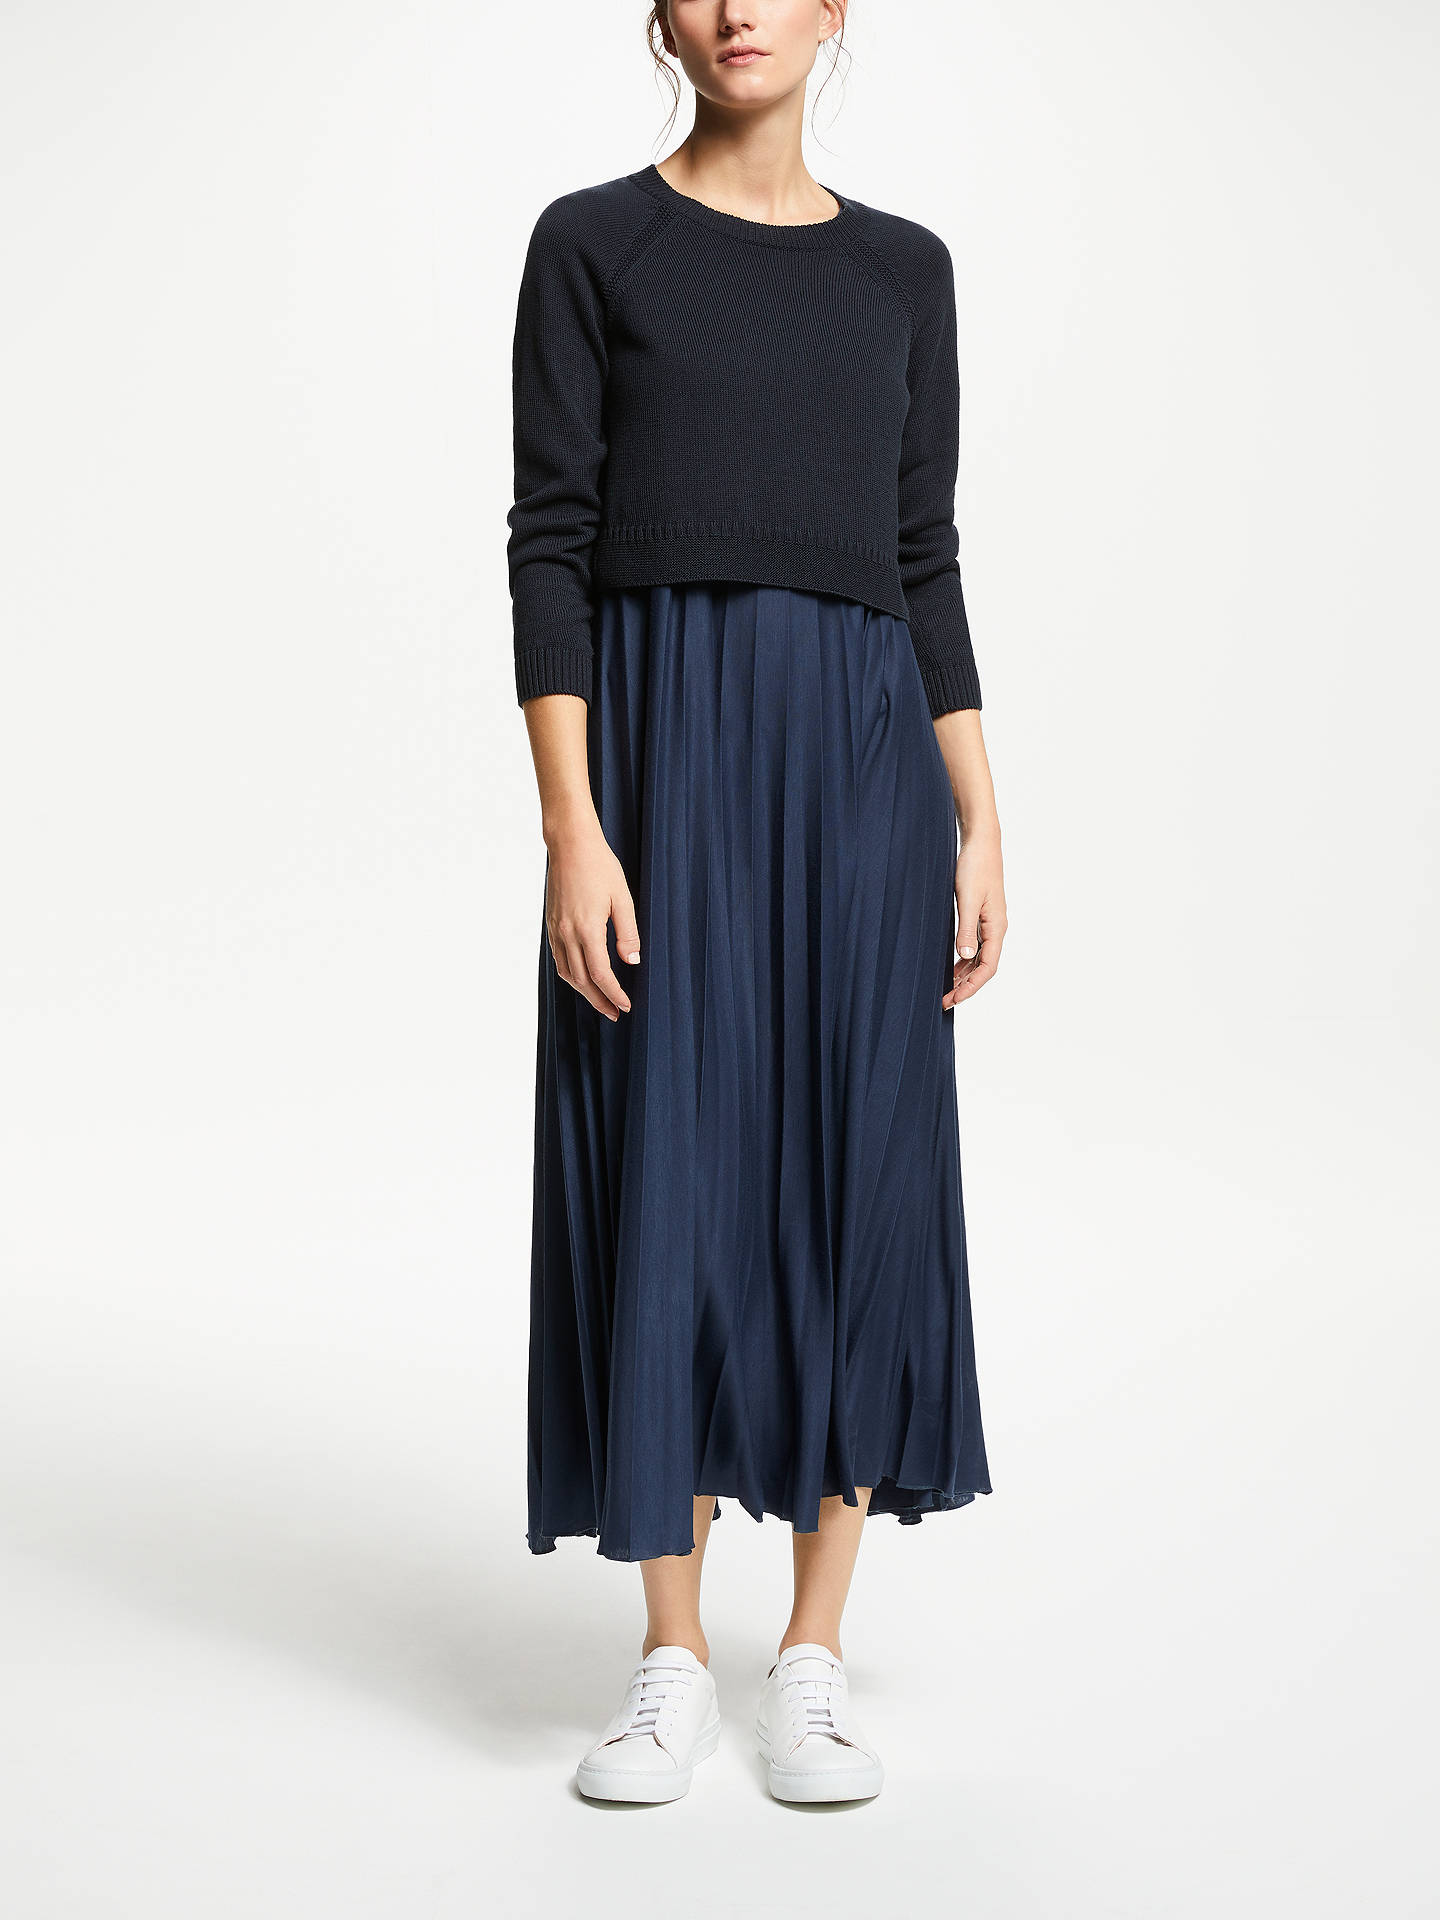 e130e70c86 Buy Weekend MaxMara Pleated Maxi Dress, Ultramarine, S Online at  johnlewis.com ...